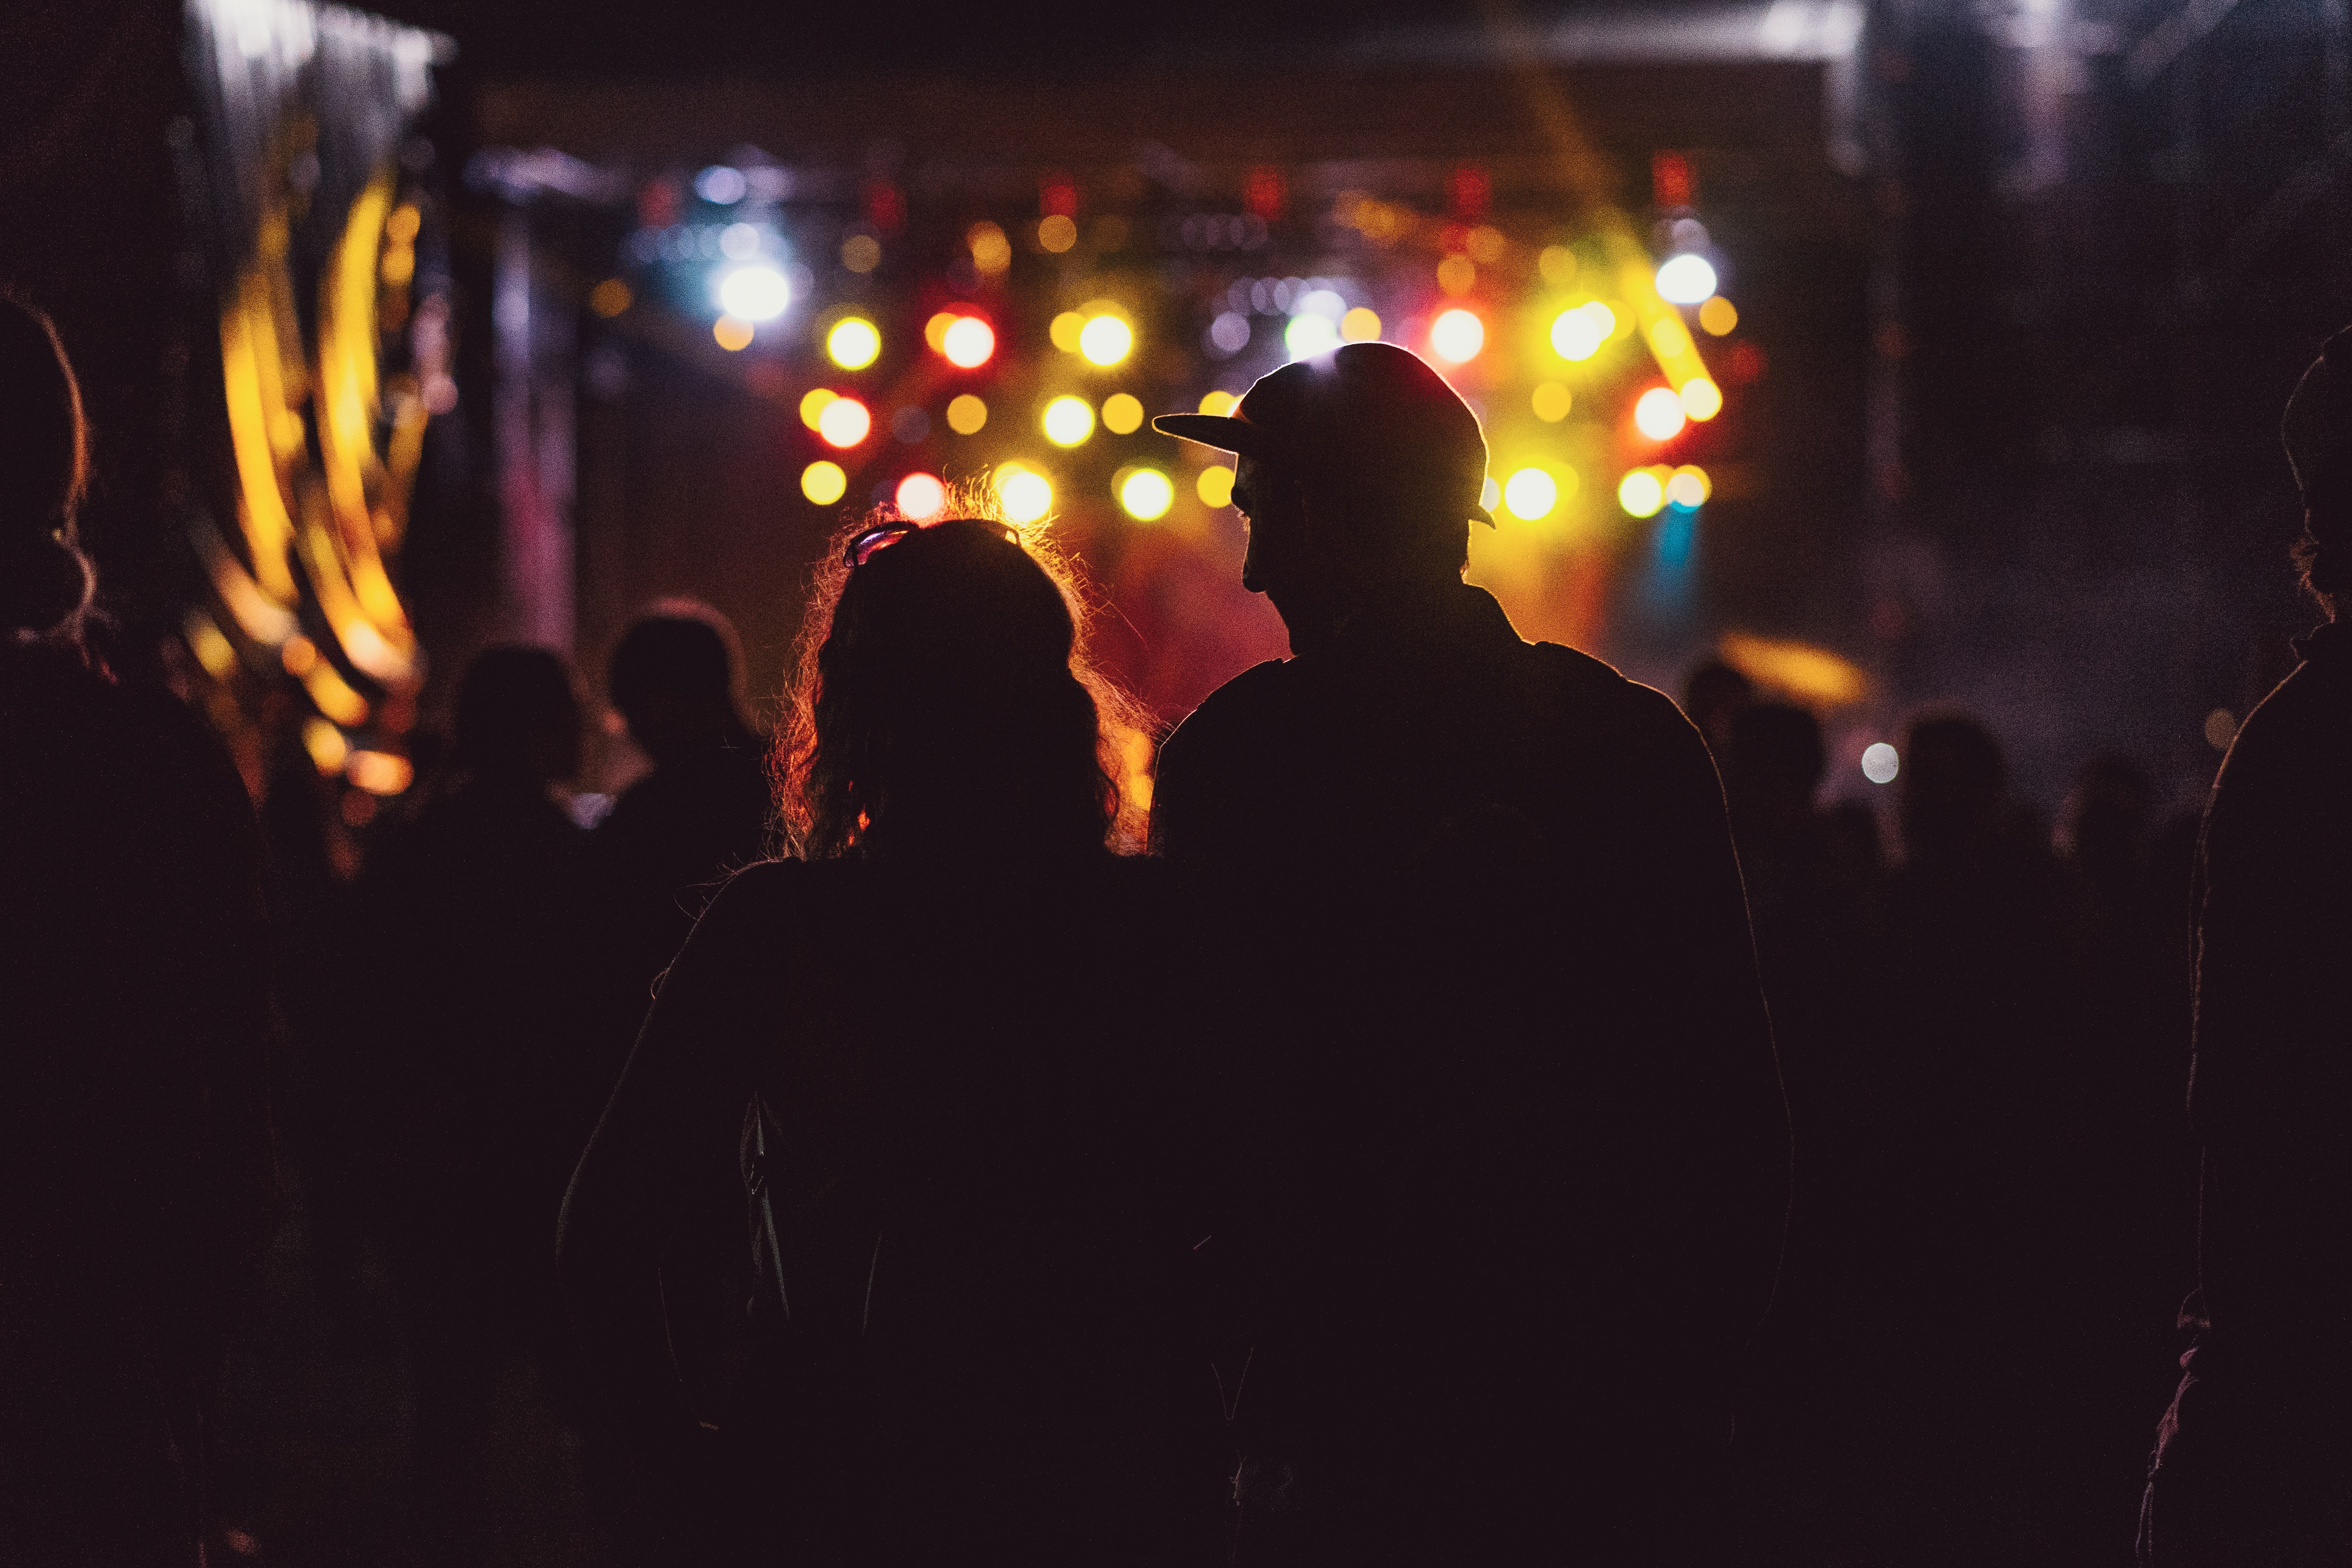 silhouette photo of a man and a woman on the stage